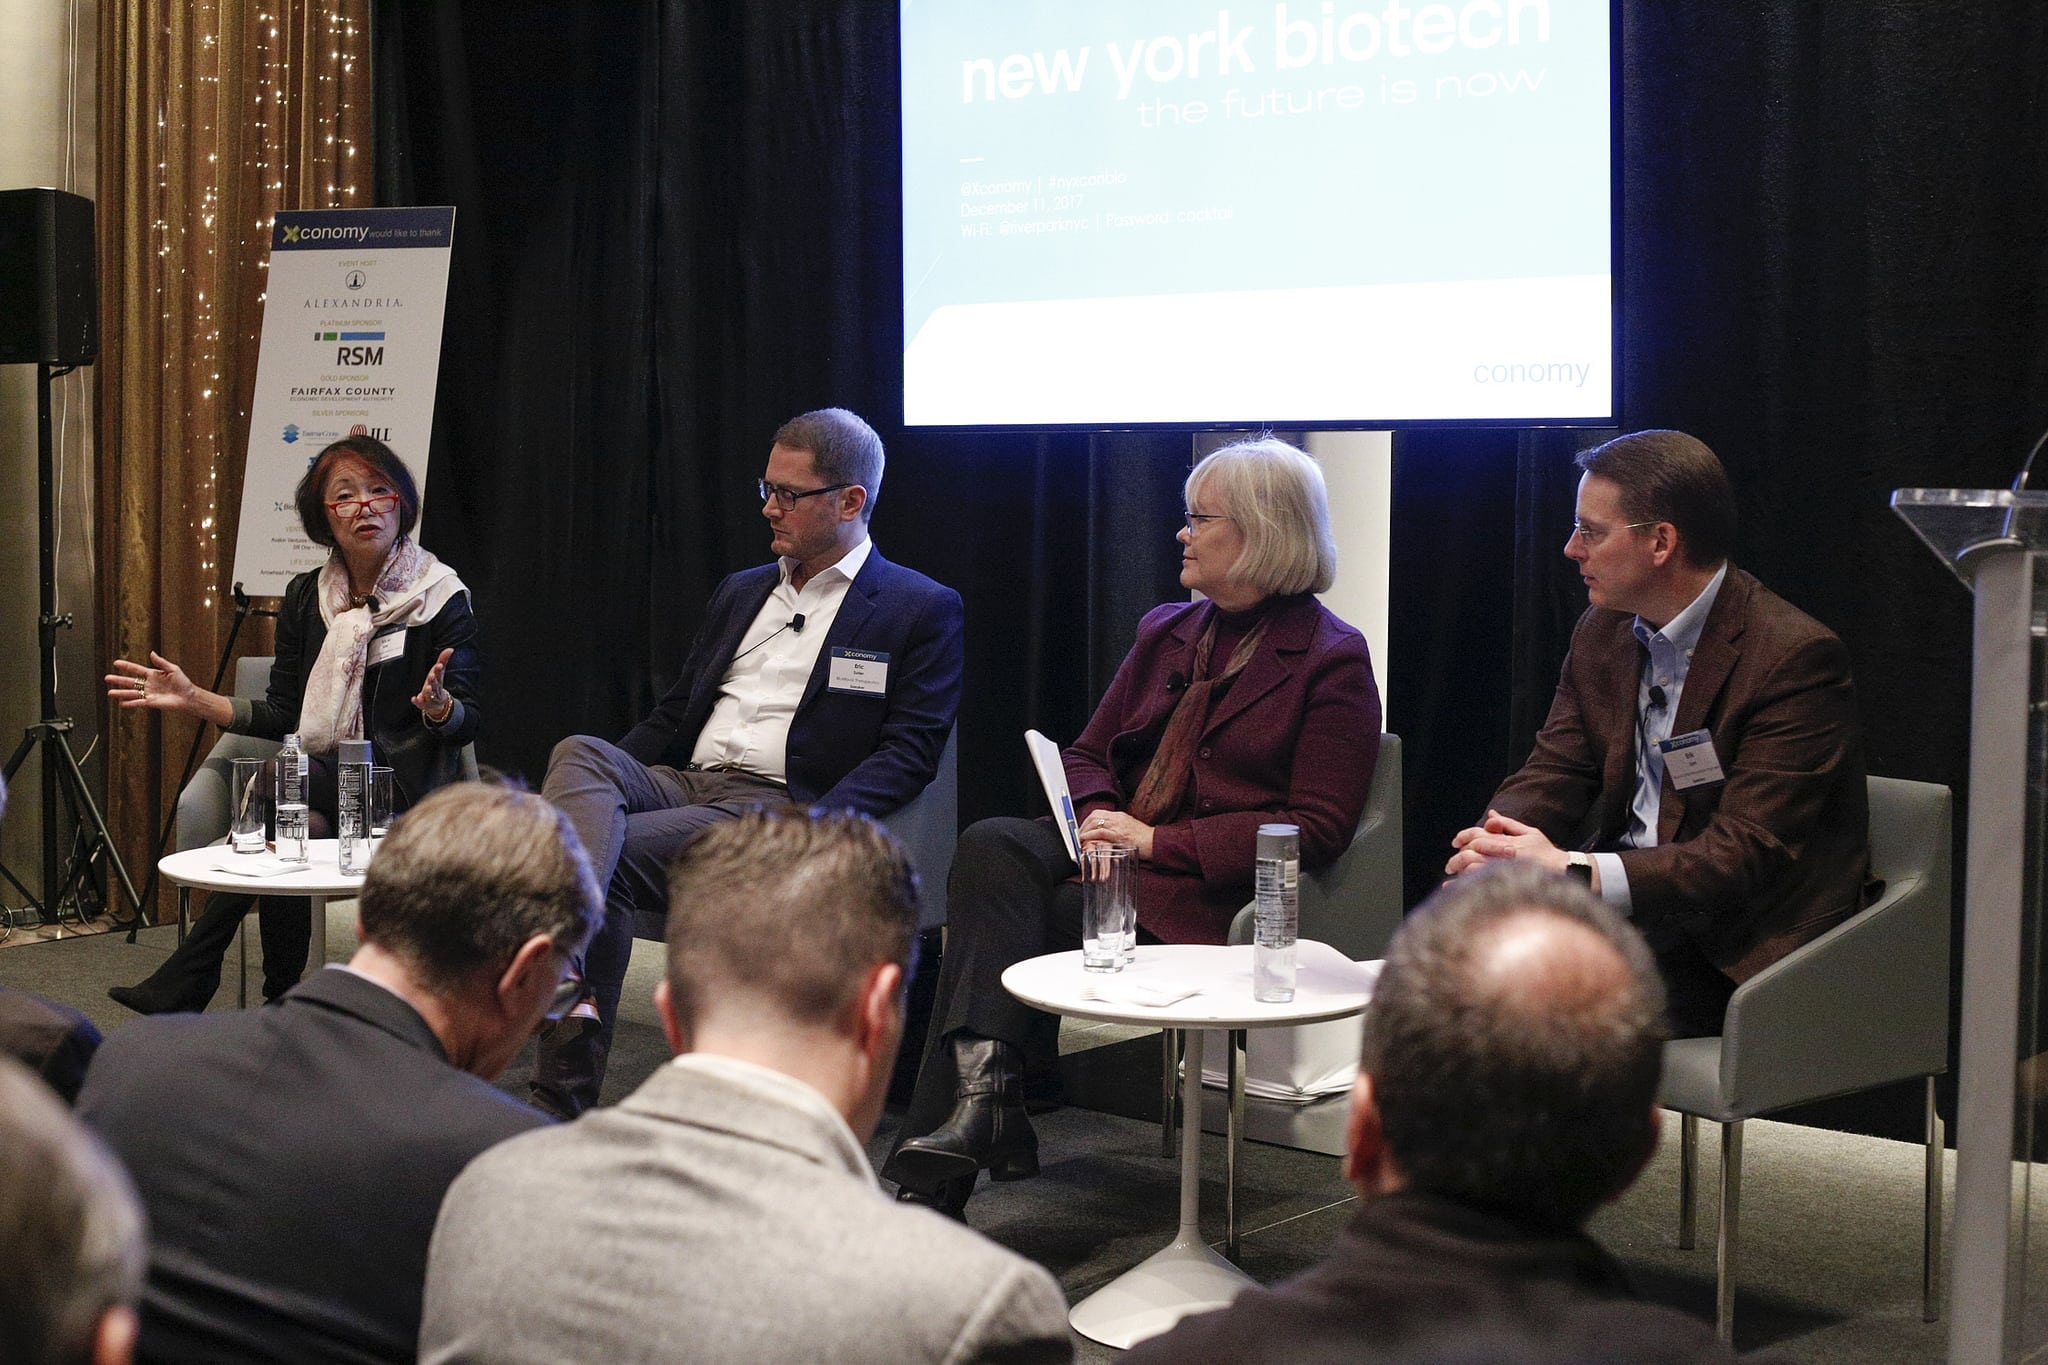 New York Biotech: The Future Is Now